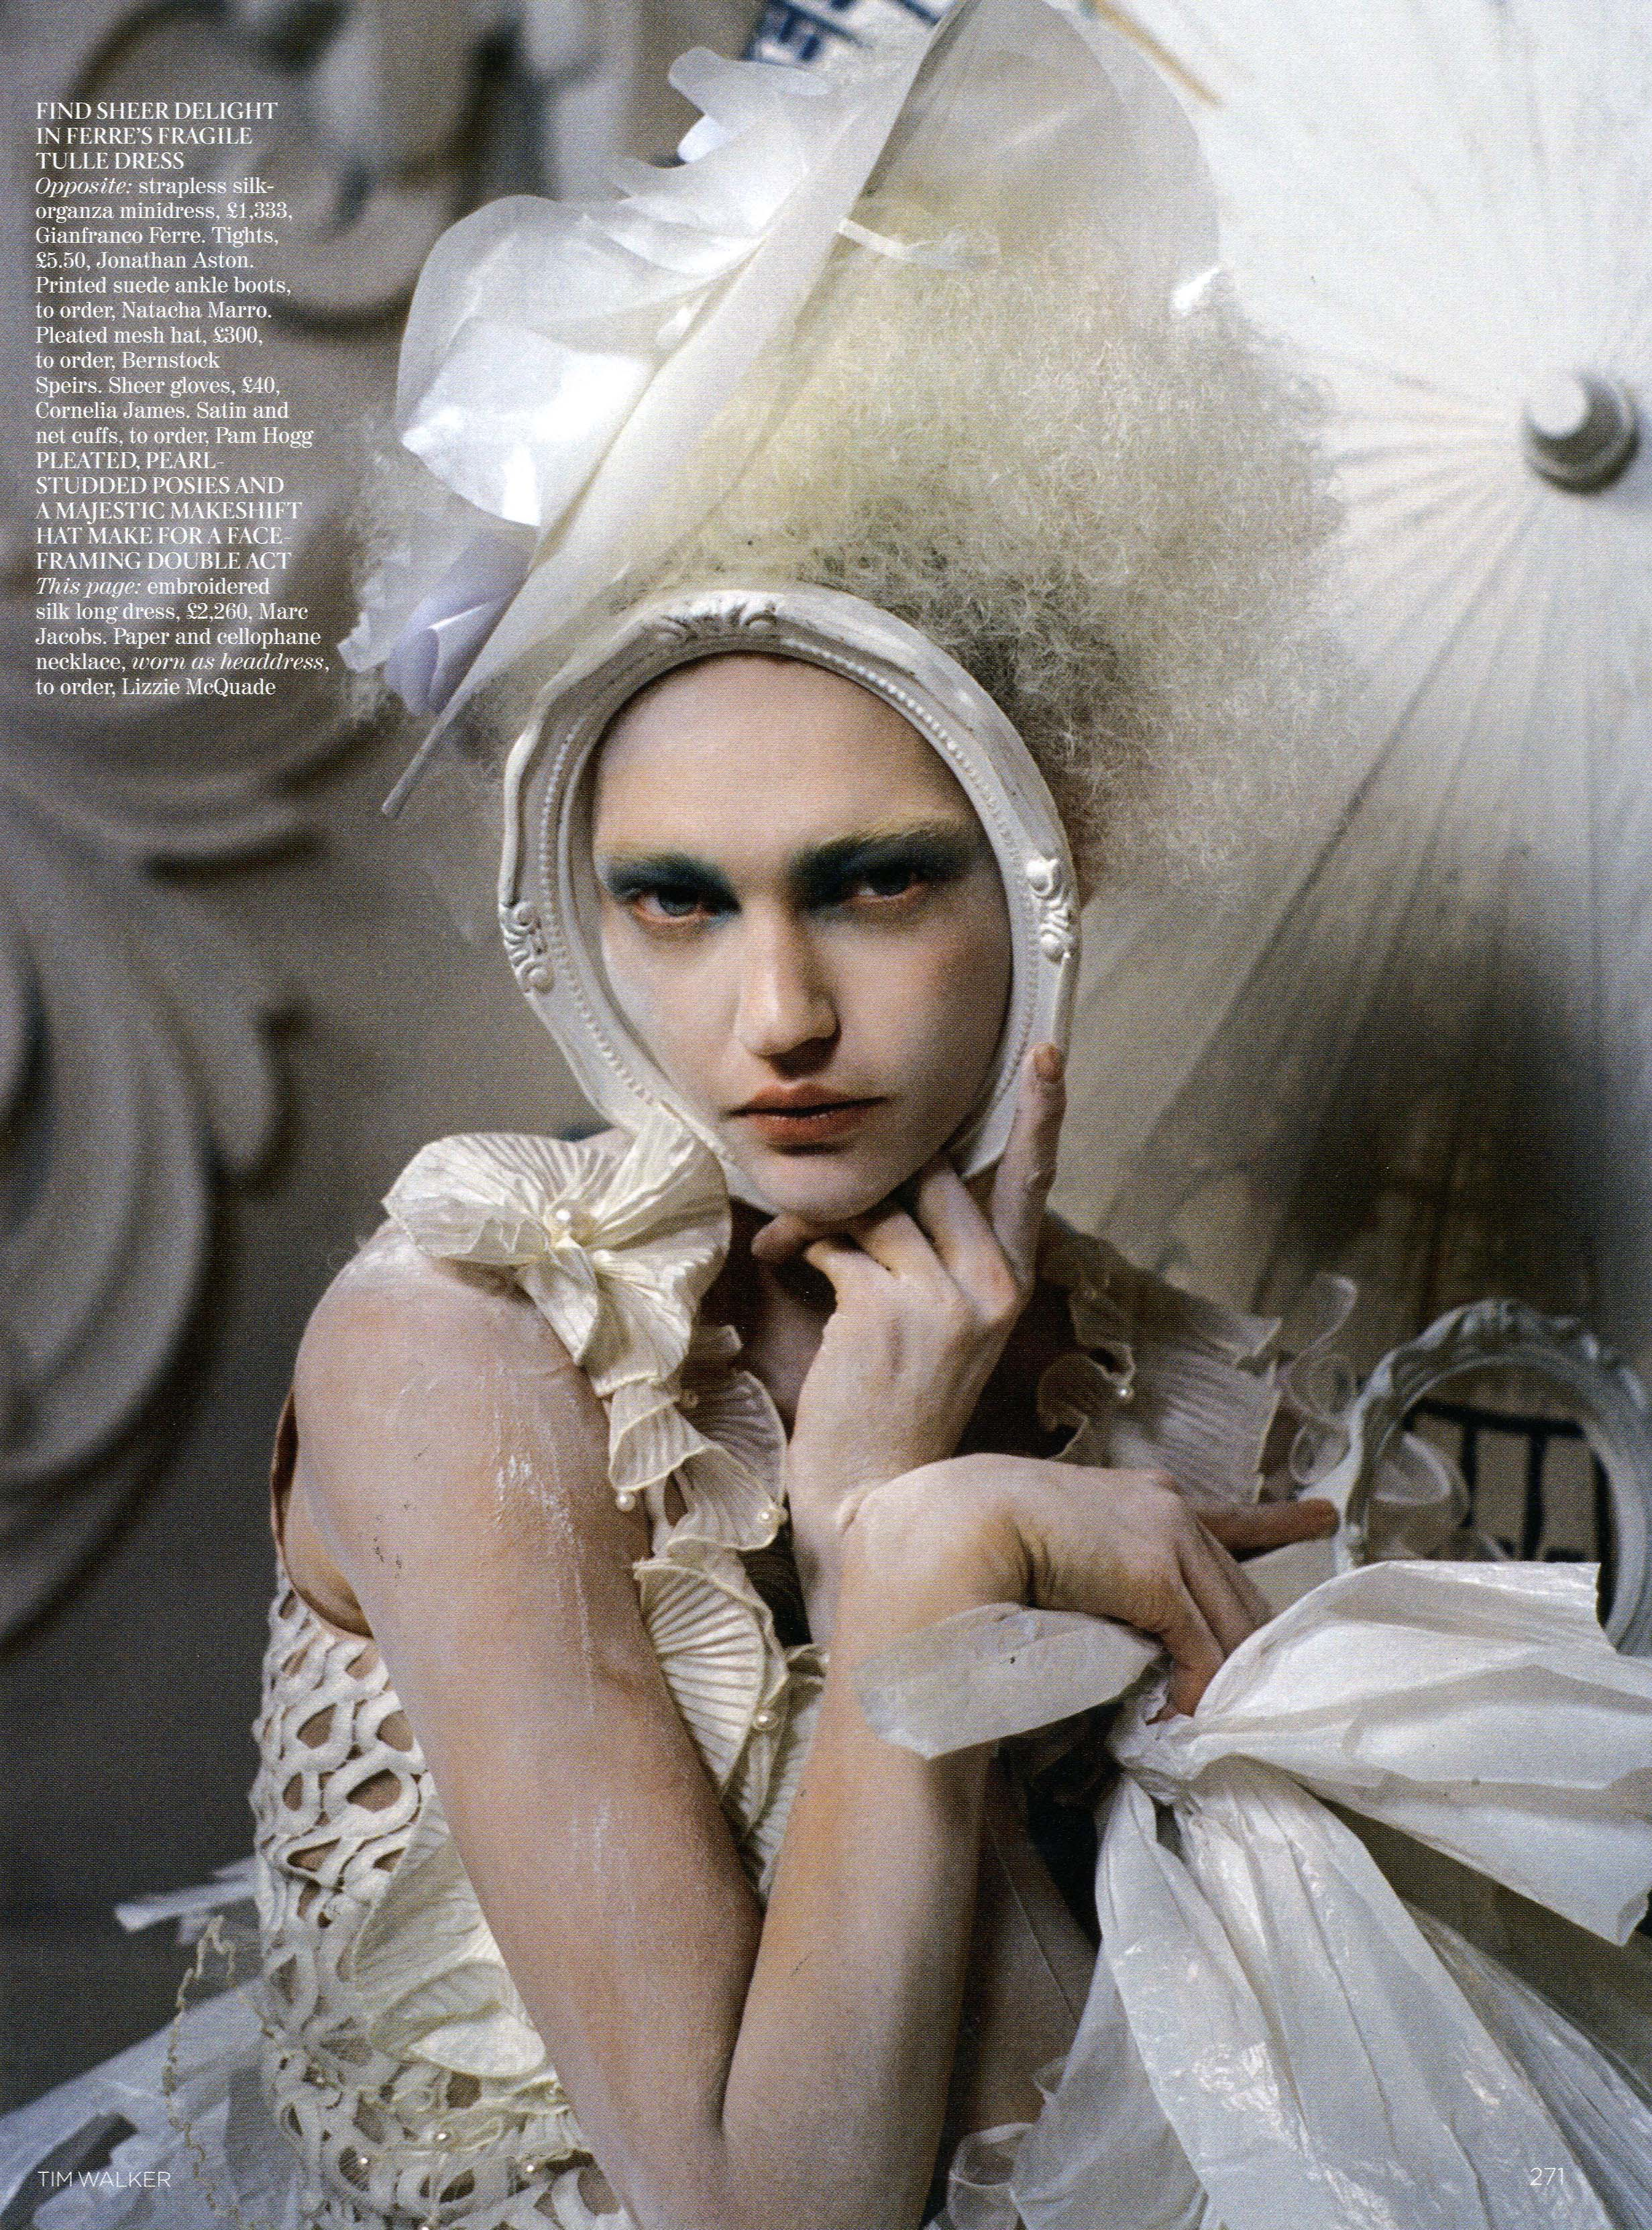 Vogue, March 2010, Kate Phelan